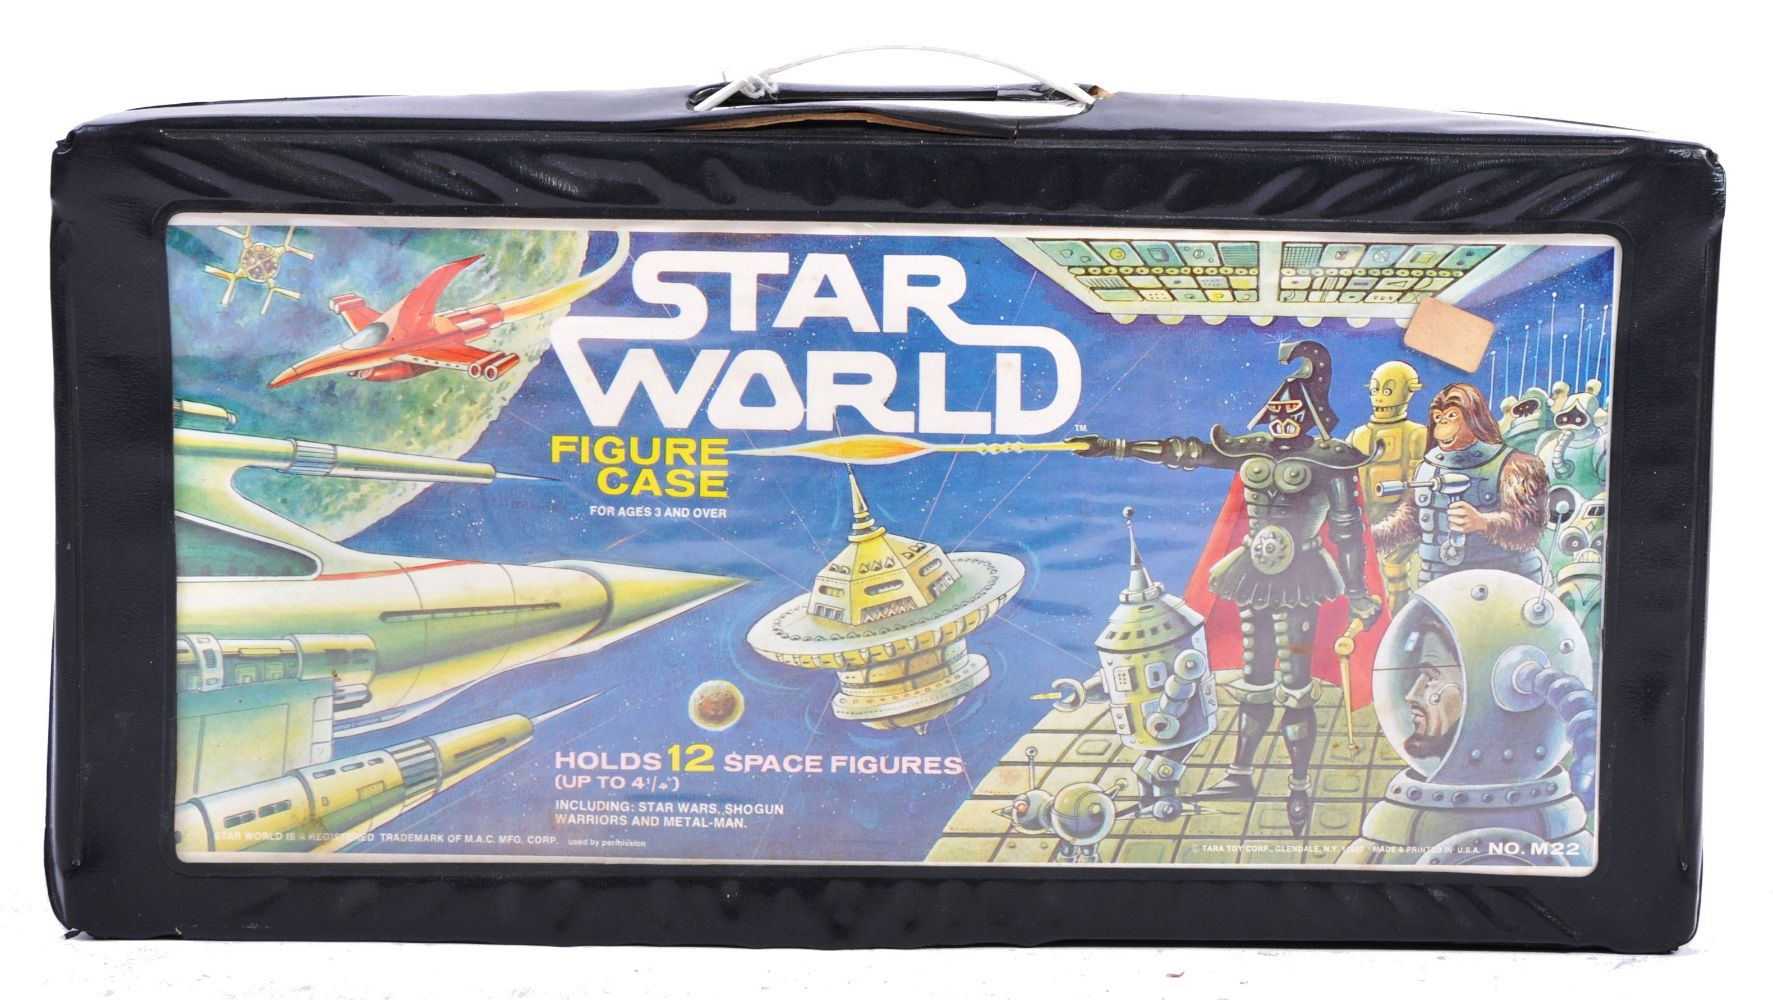 Toy Collectors' Auction - Worldwide Postage, Packing & Delivery Available On All Items, see www.eastbristol.co.uk